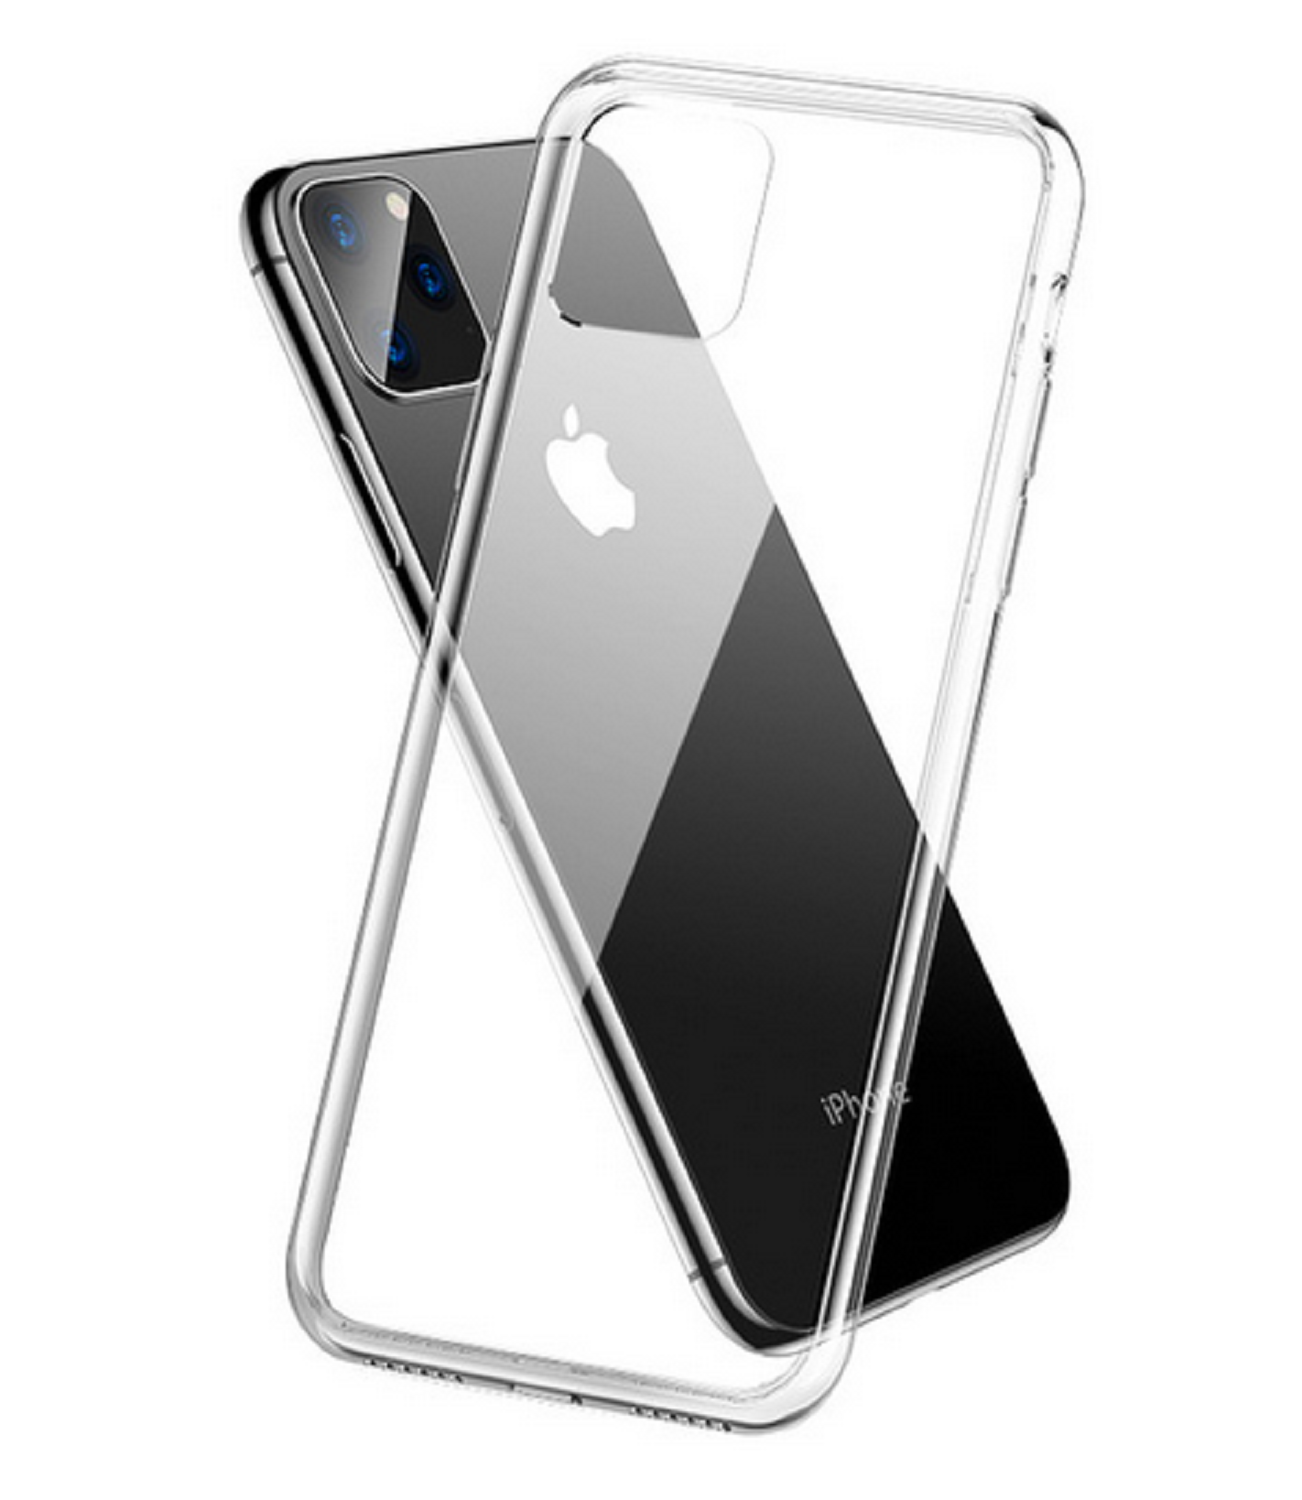 Funda Suave Silicona Gel TPU Carcasa Case PARA iPhone 11 Moda Color Transparente